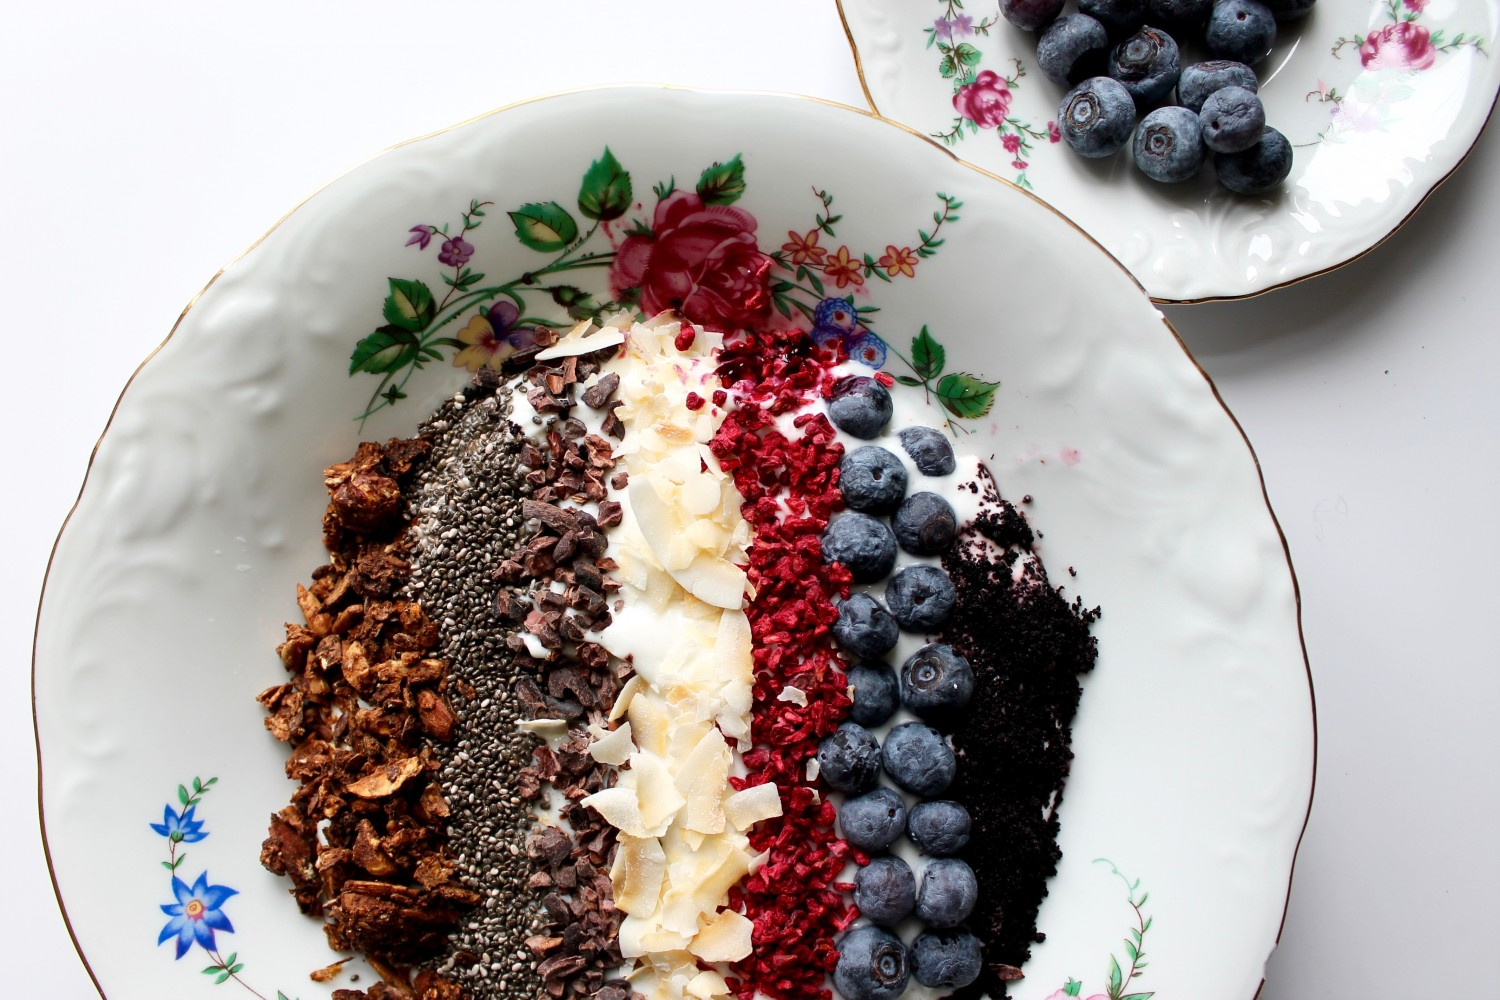 Morgenmad med superfood